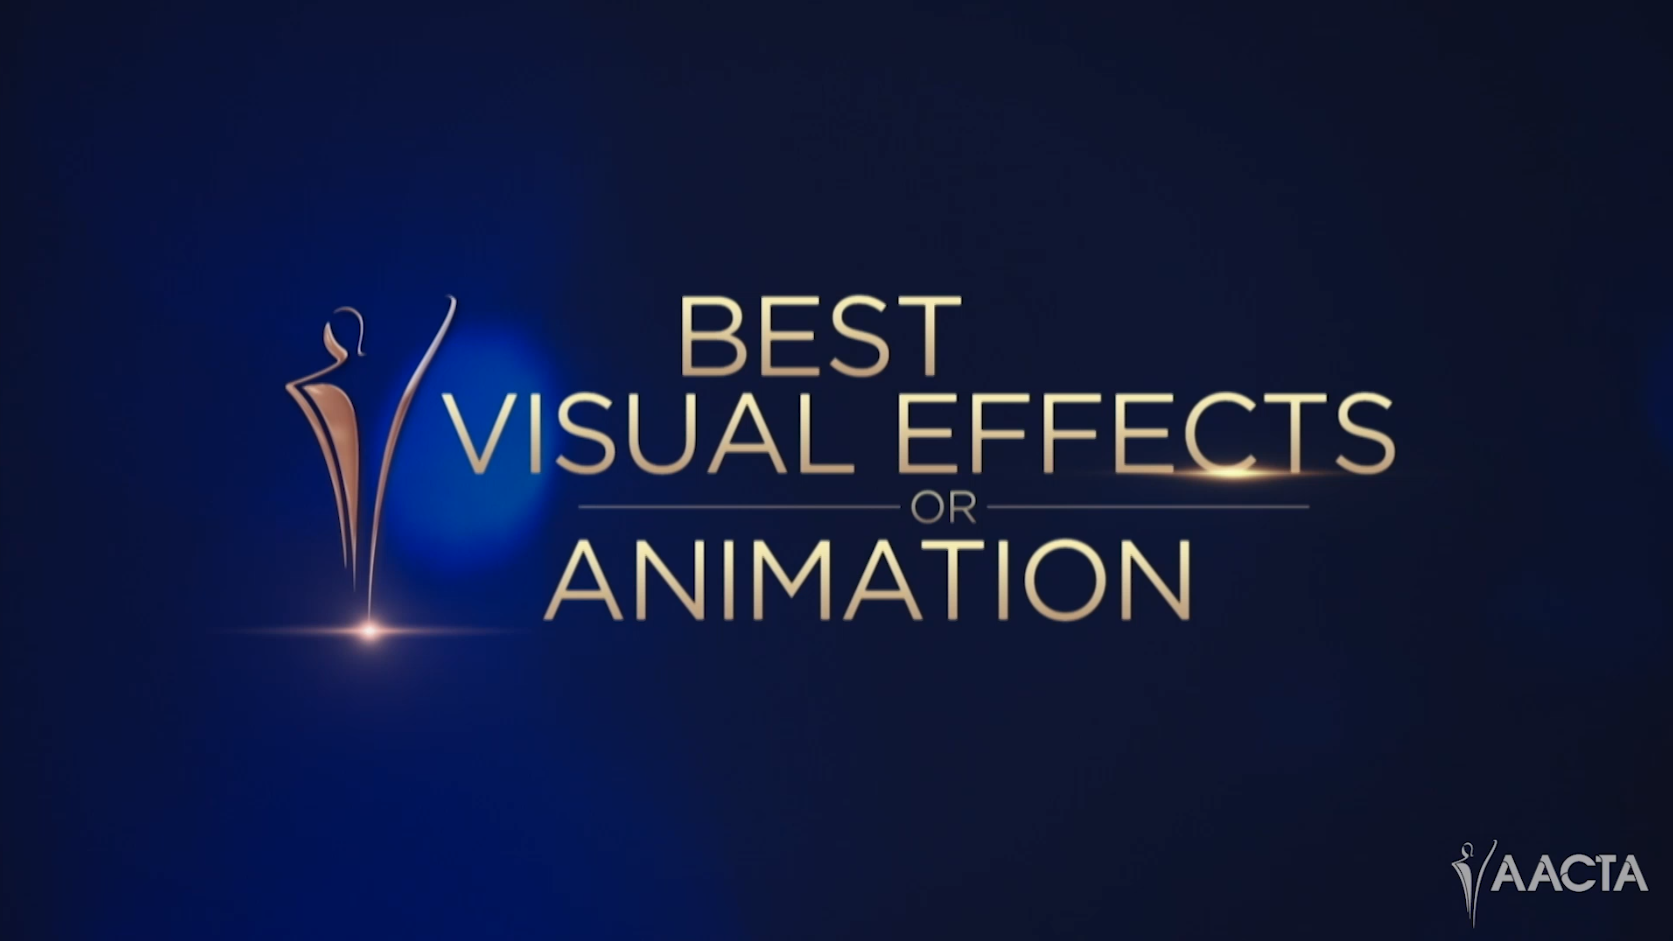 BestVFX_TheEightHundred_RSP_1080p_social